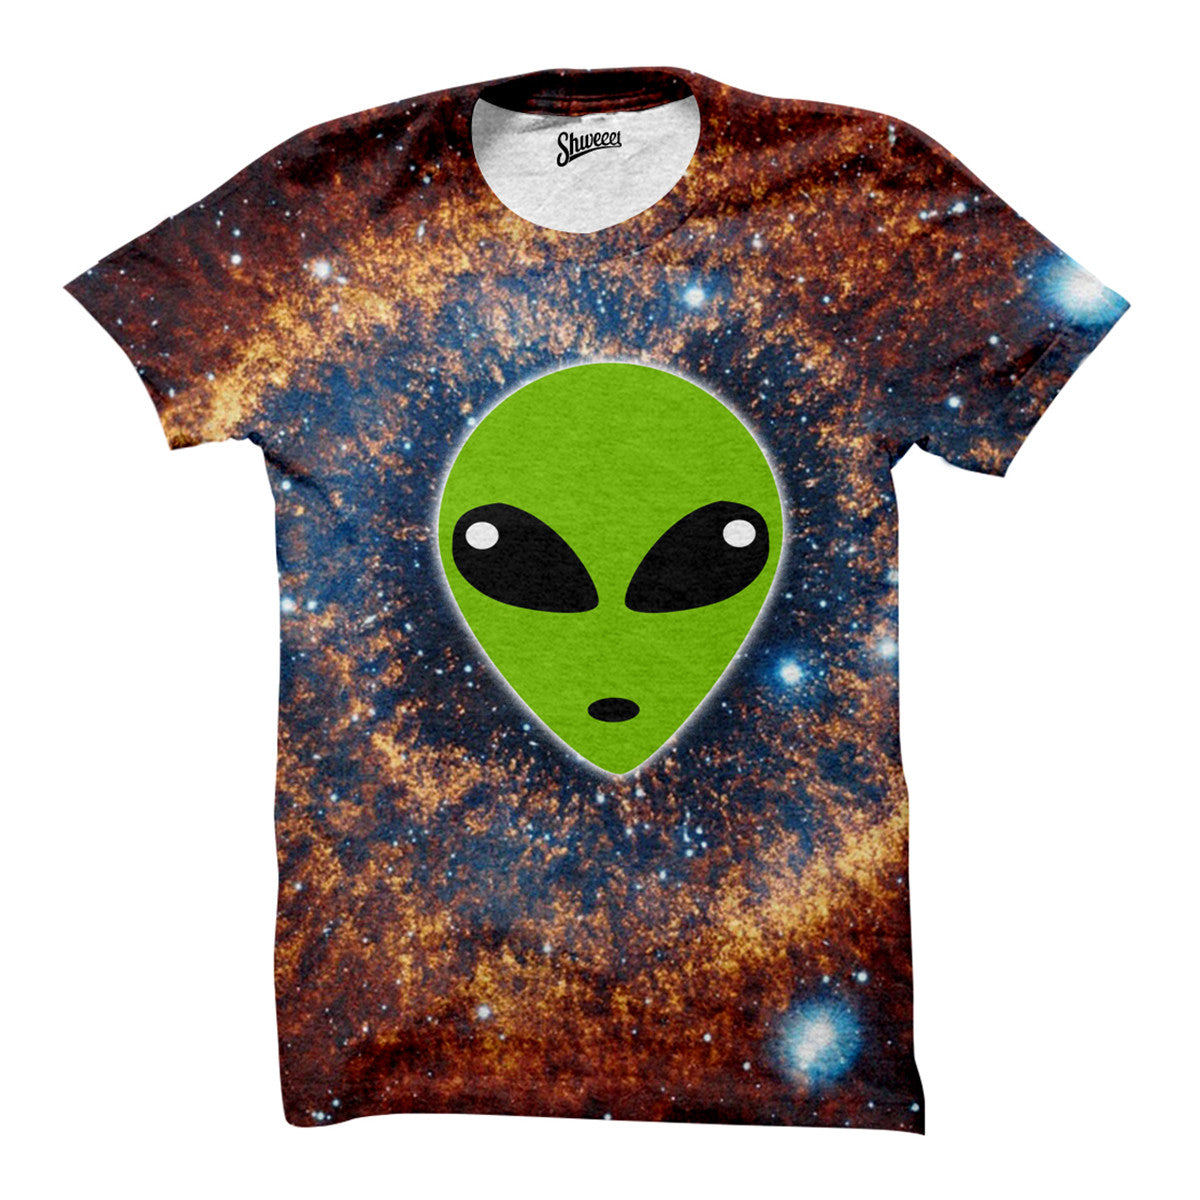 Galaxy Alien T shirt - Shweeet